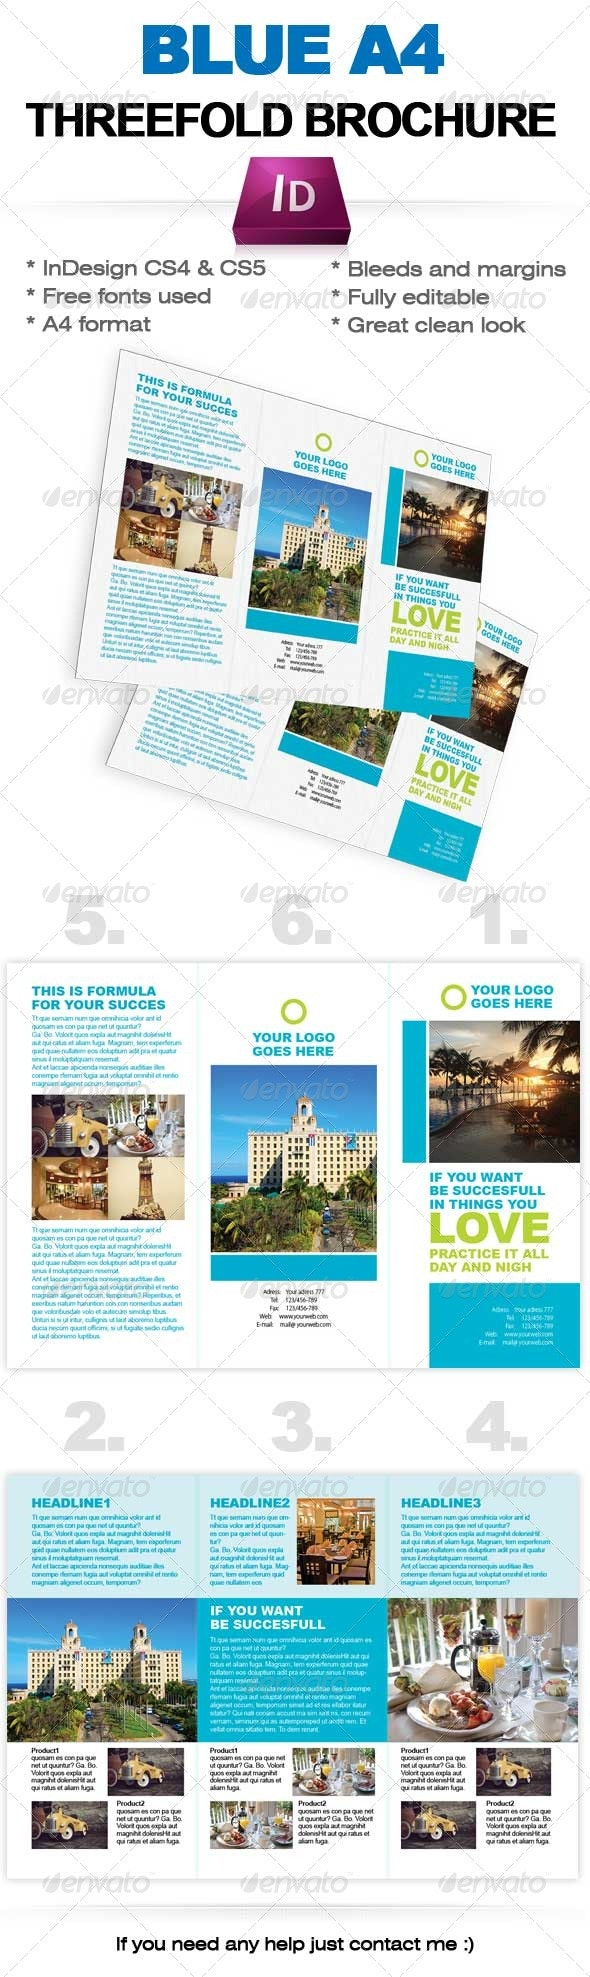 Blue Threefold brochure InDesign template (A4) - Corporate Brochures